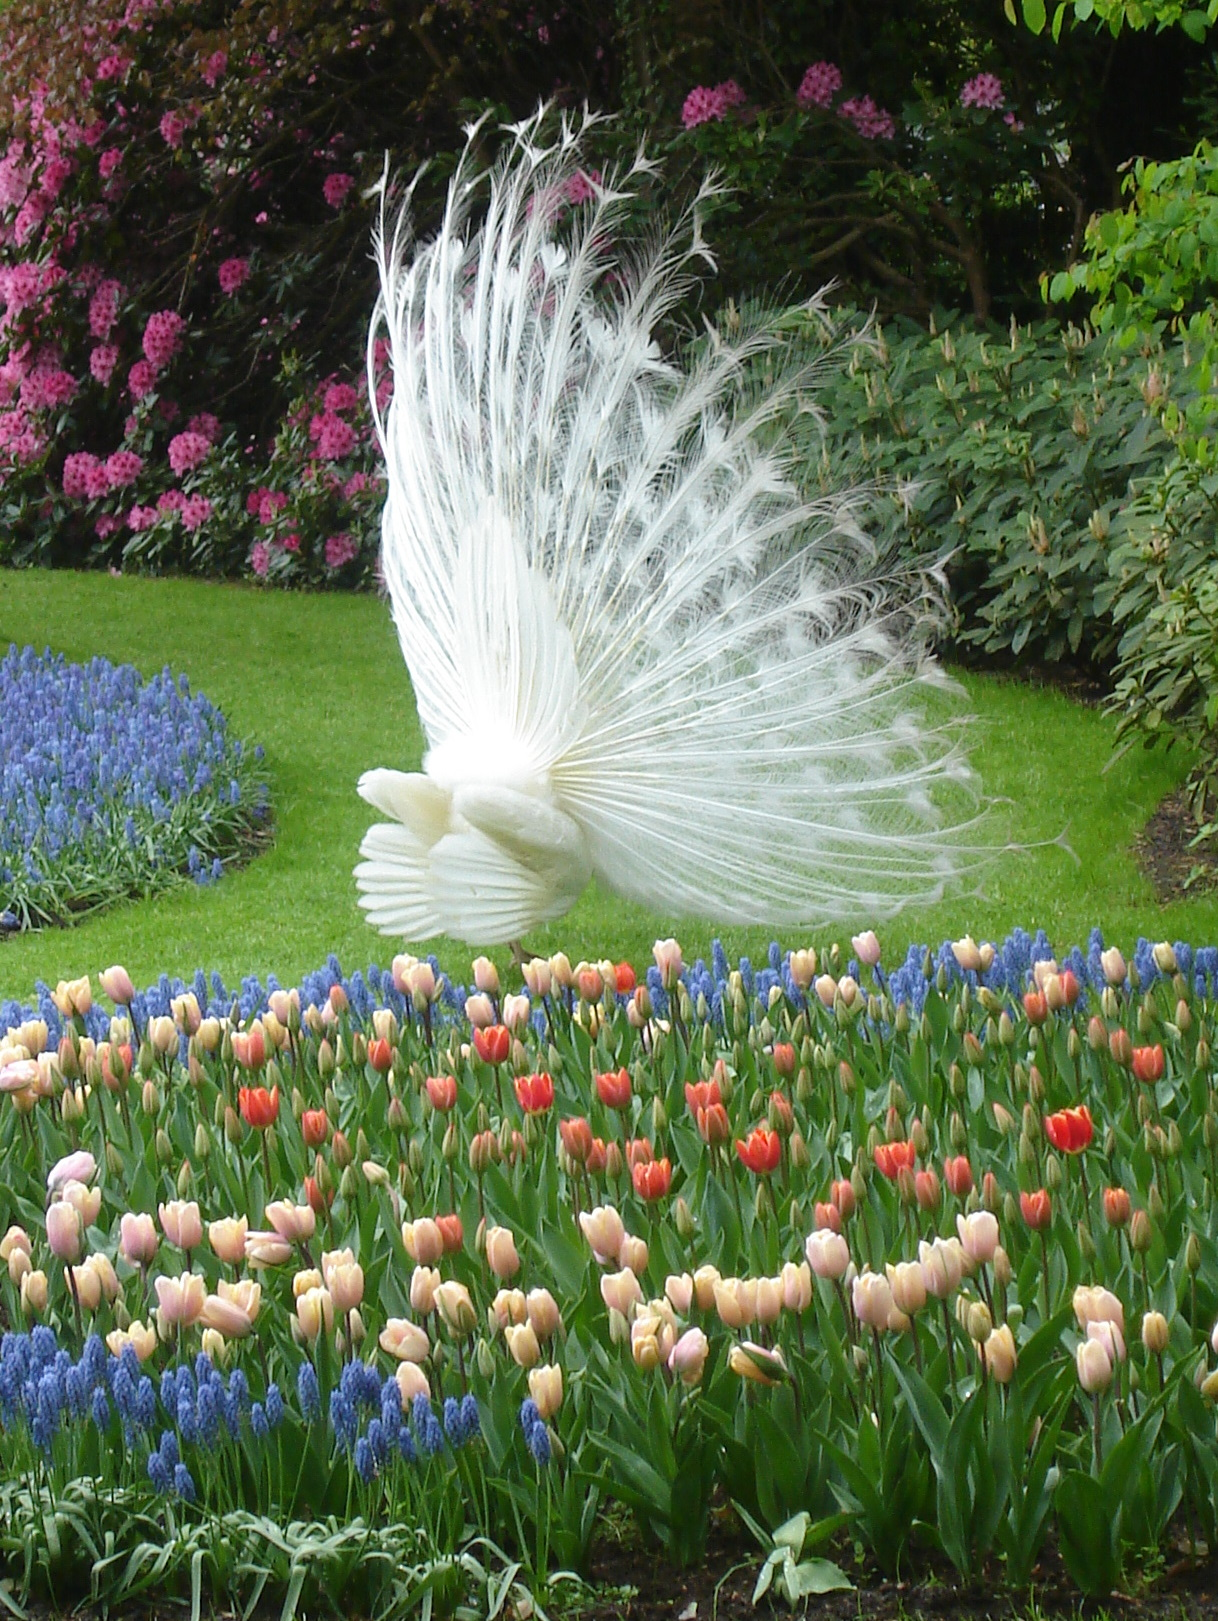 File:White peacock Keukenhof back.jpg